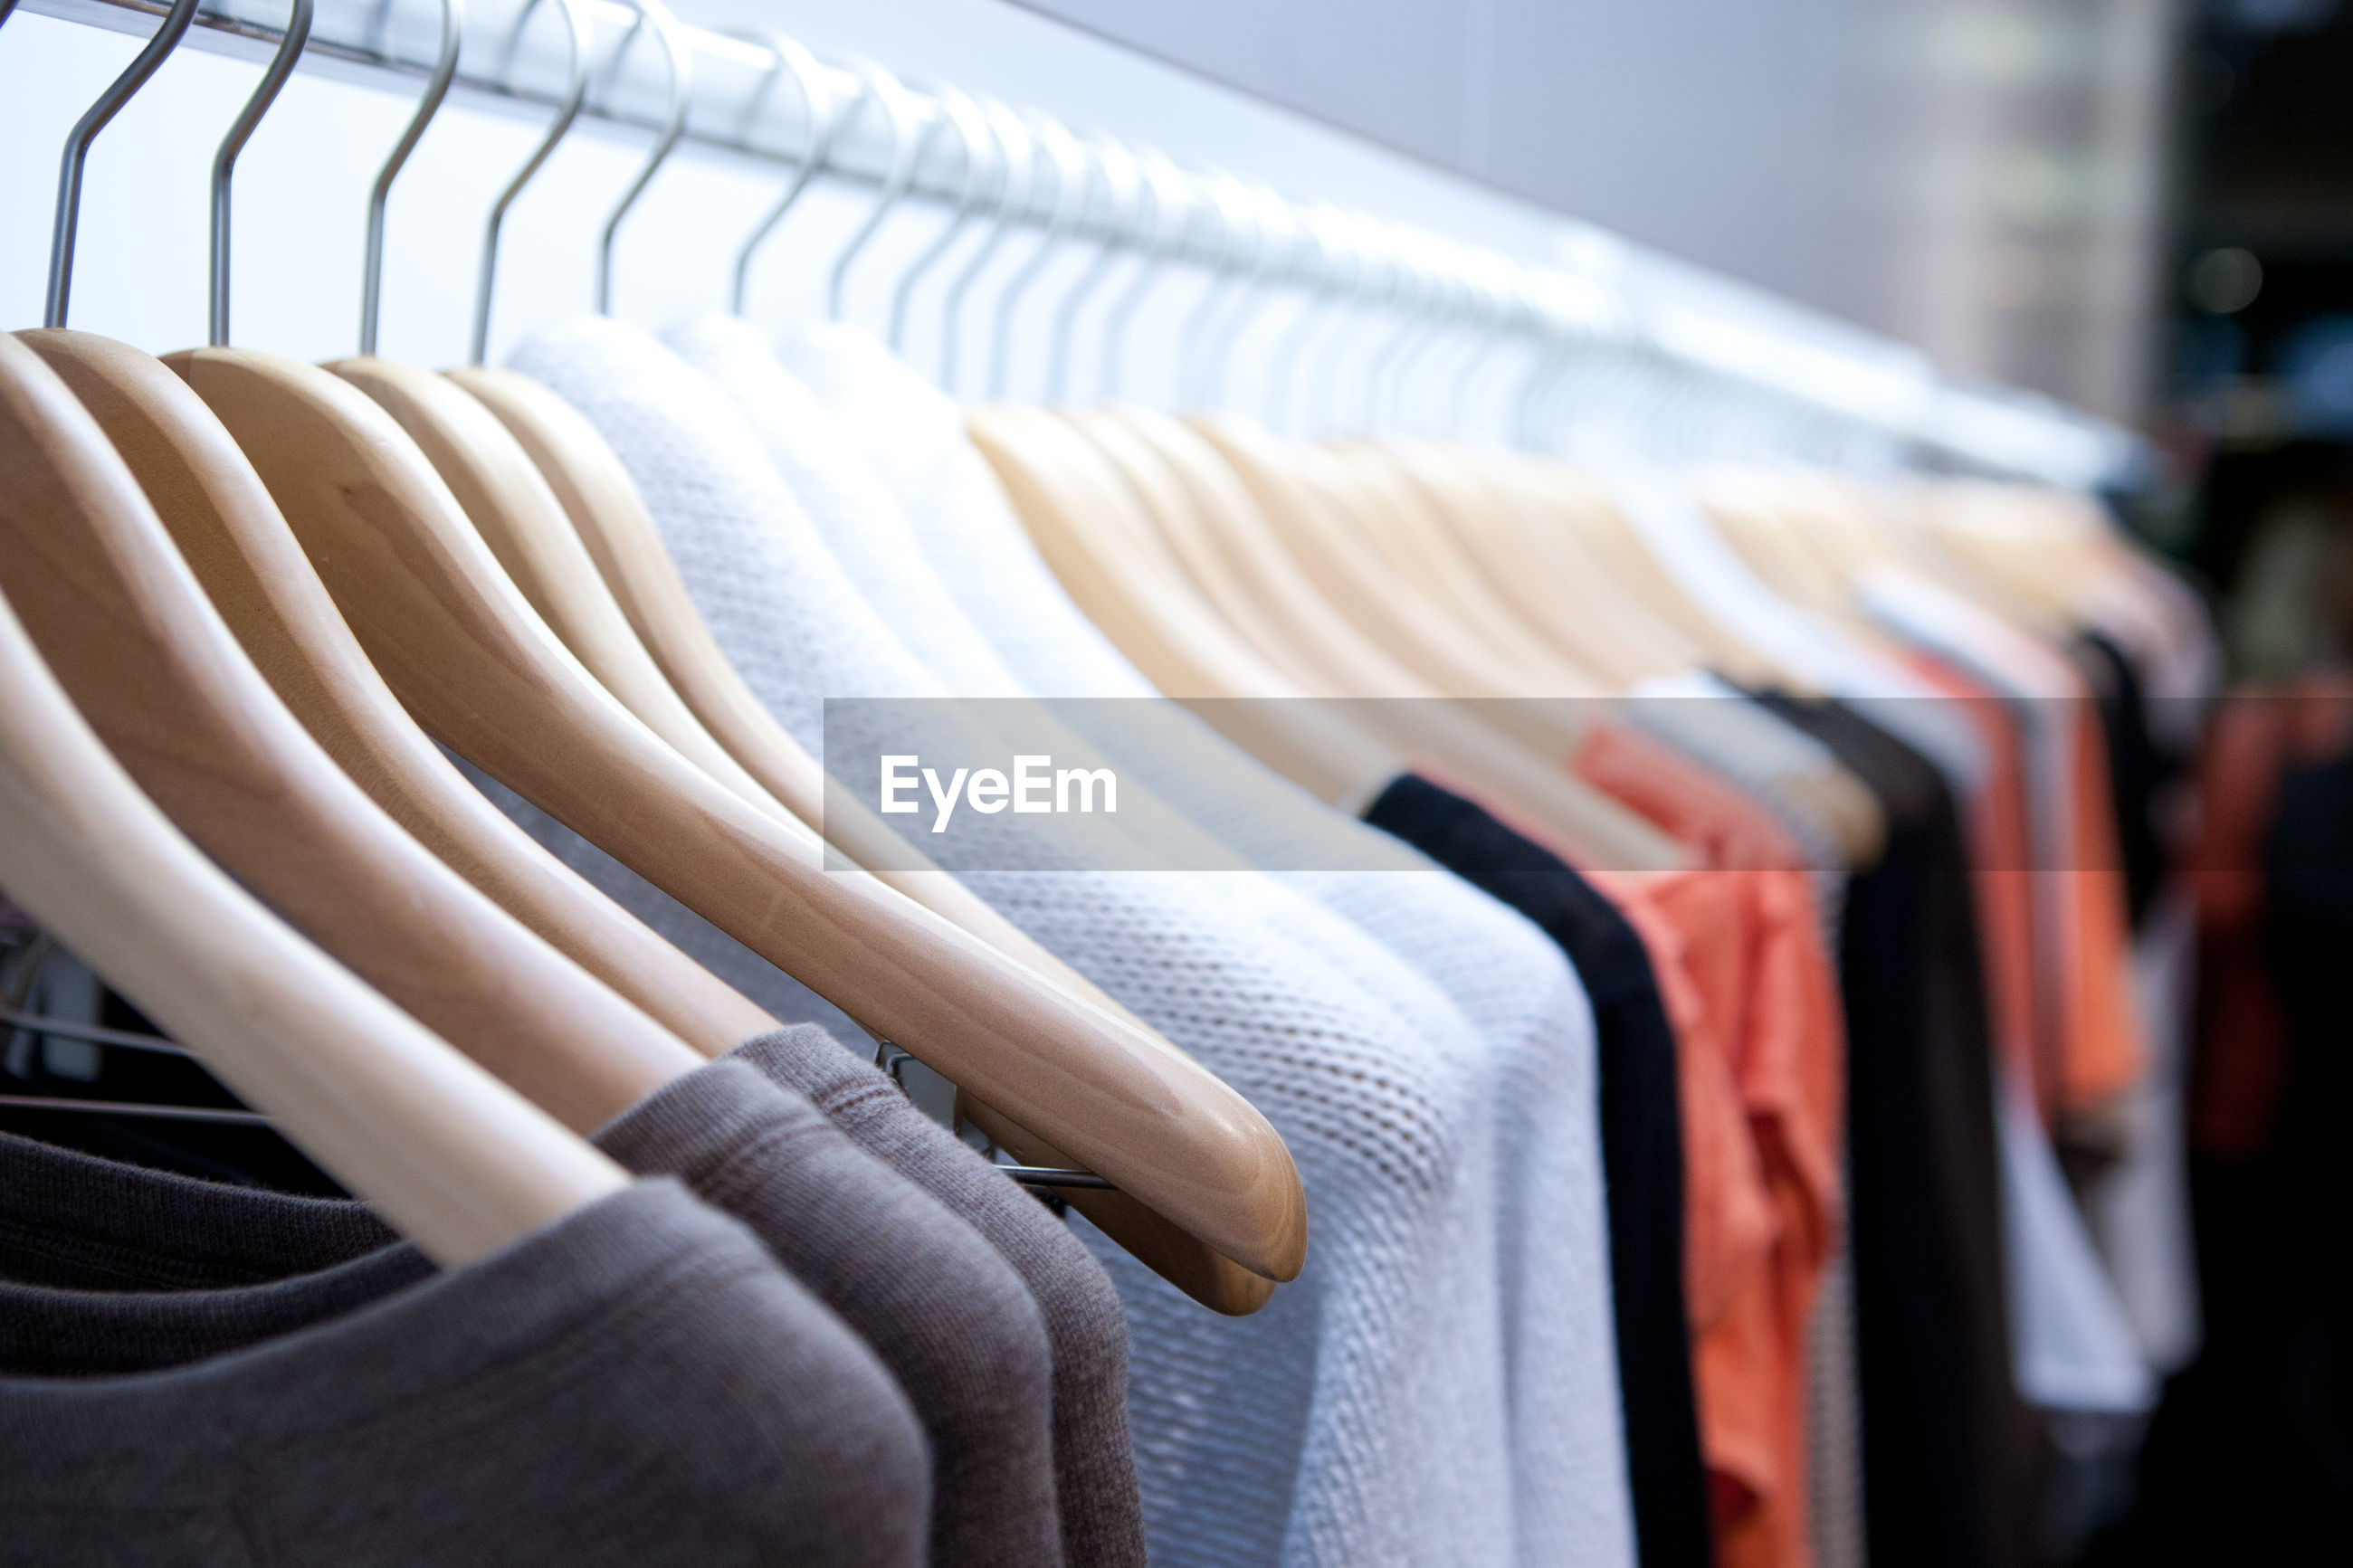 Clothes drying on rack at store